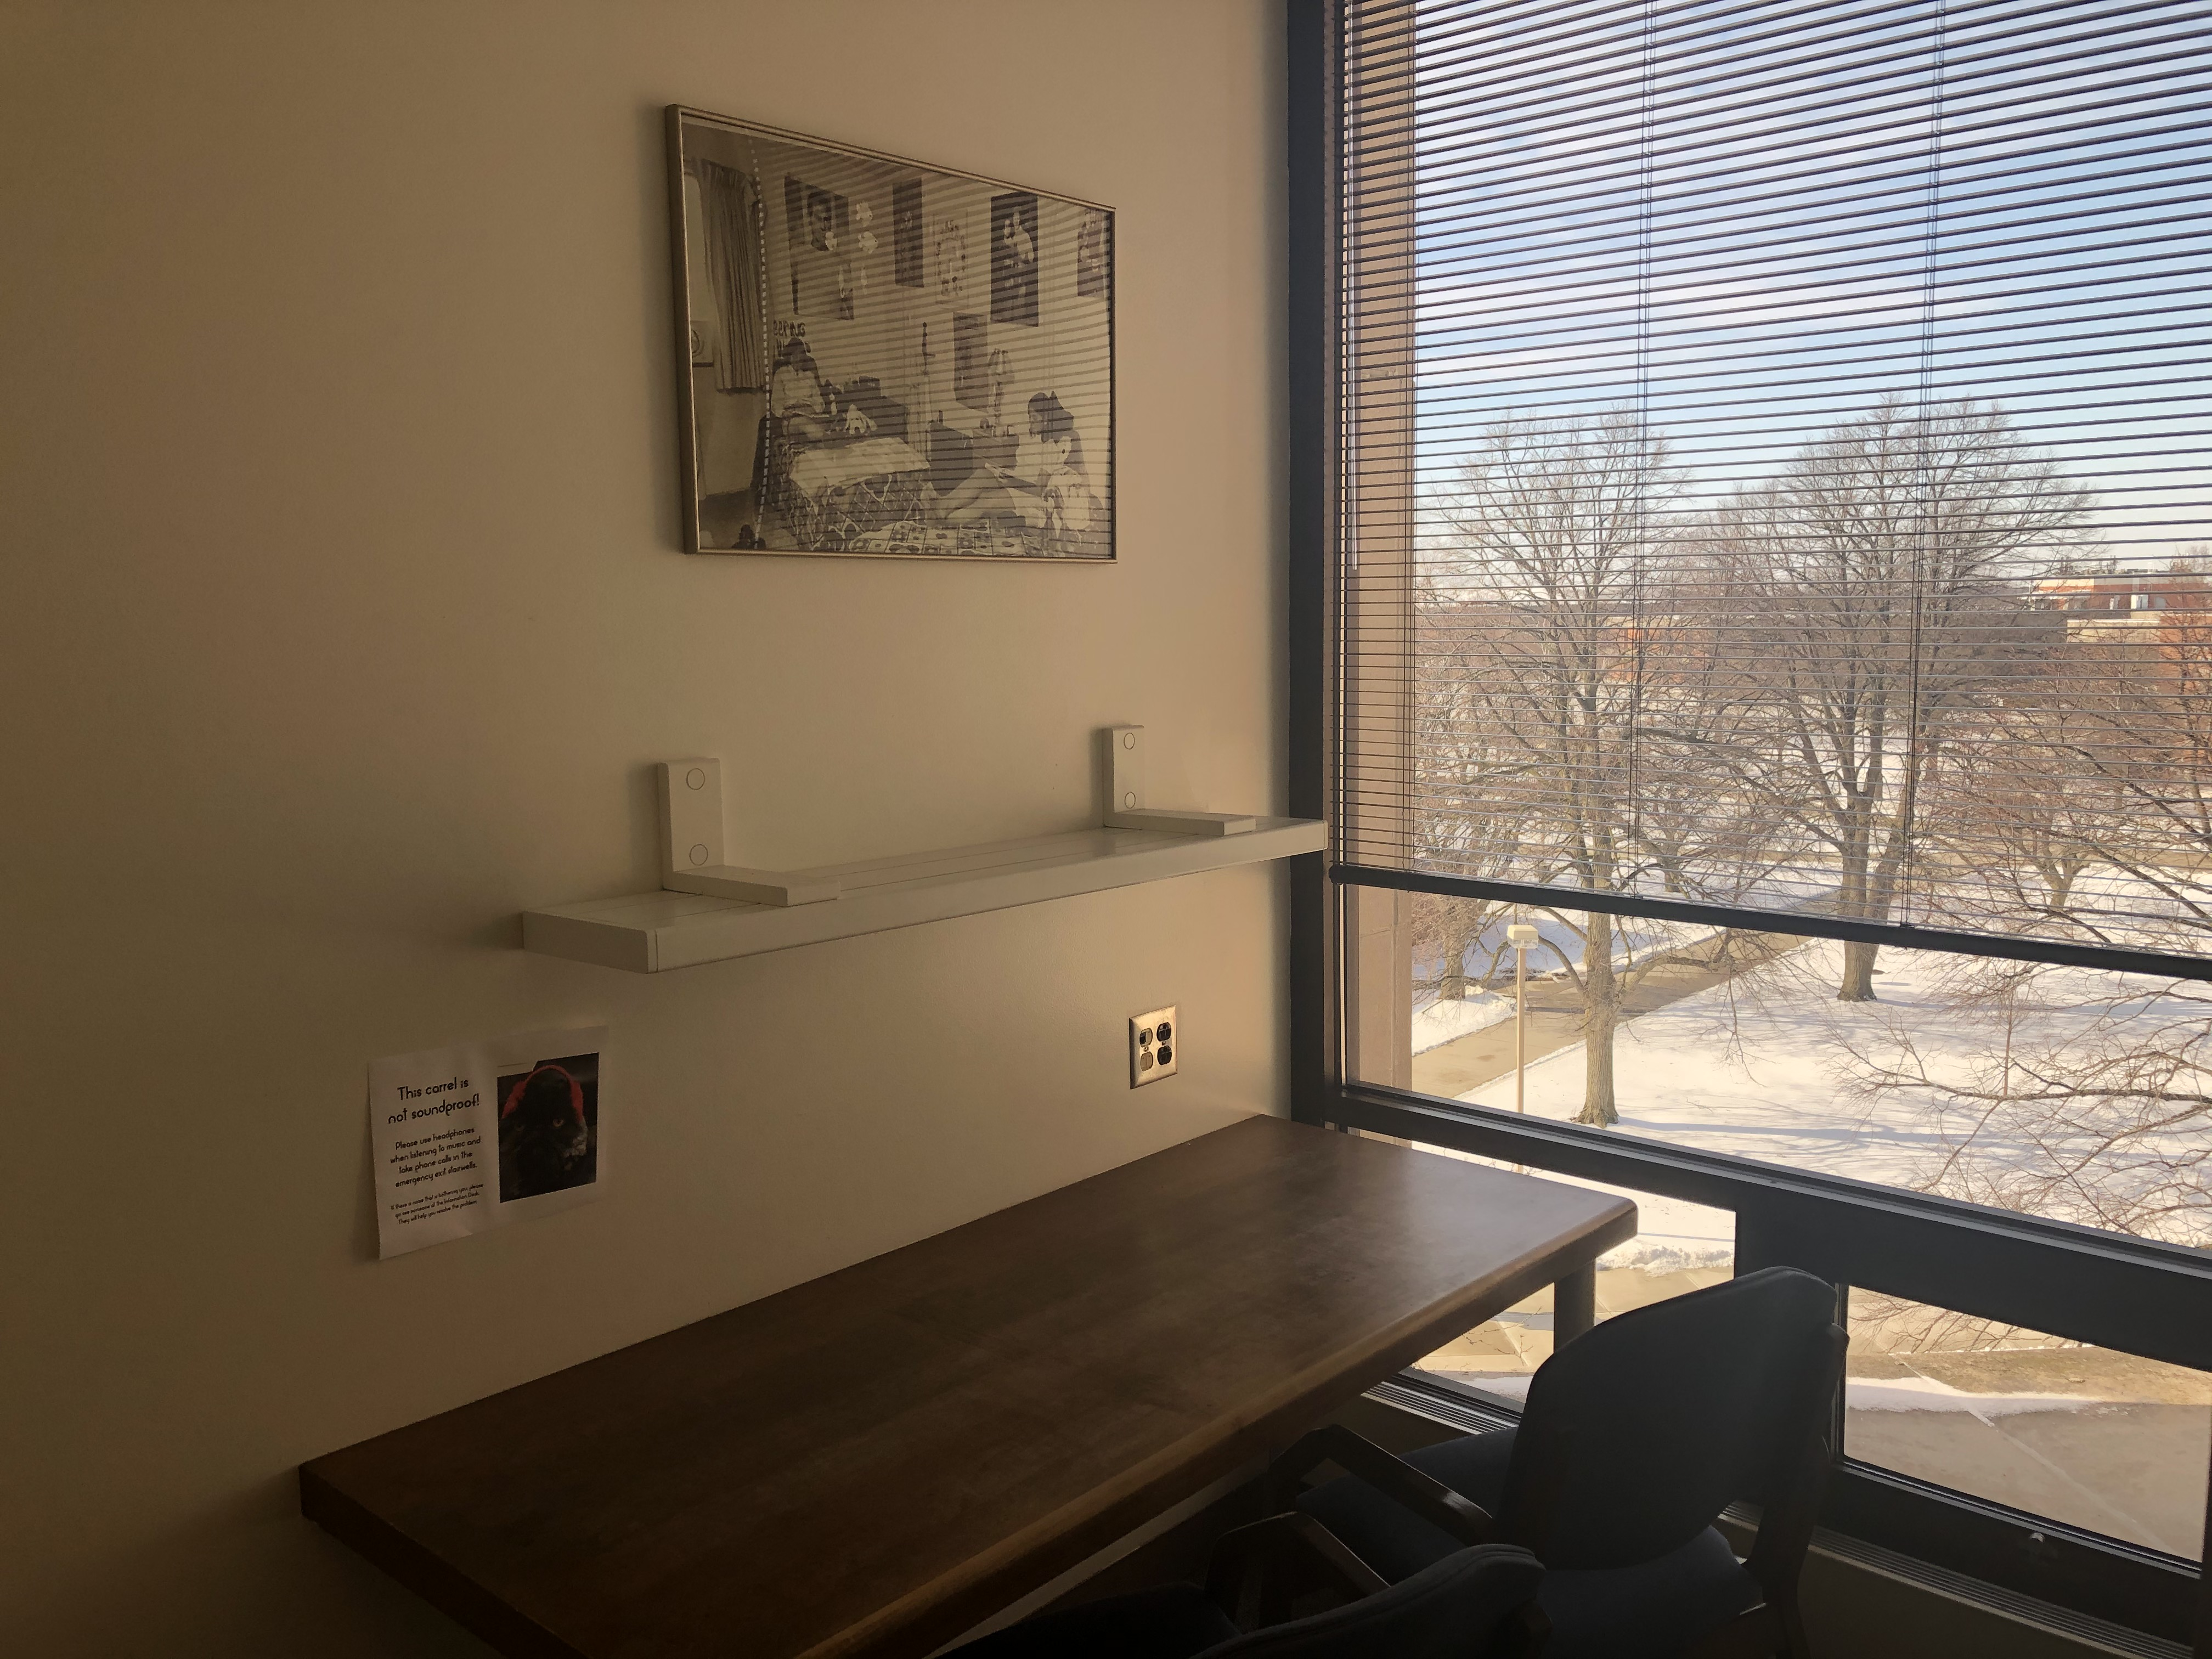 An individual study space with a view of campus and accessible outlets.